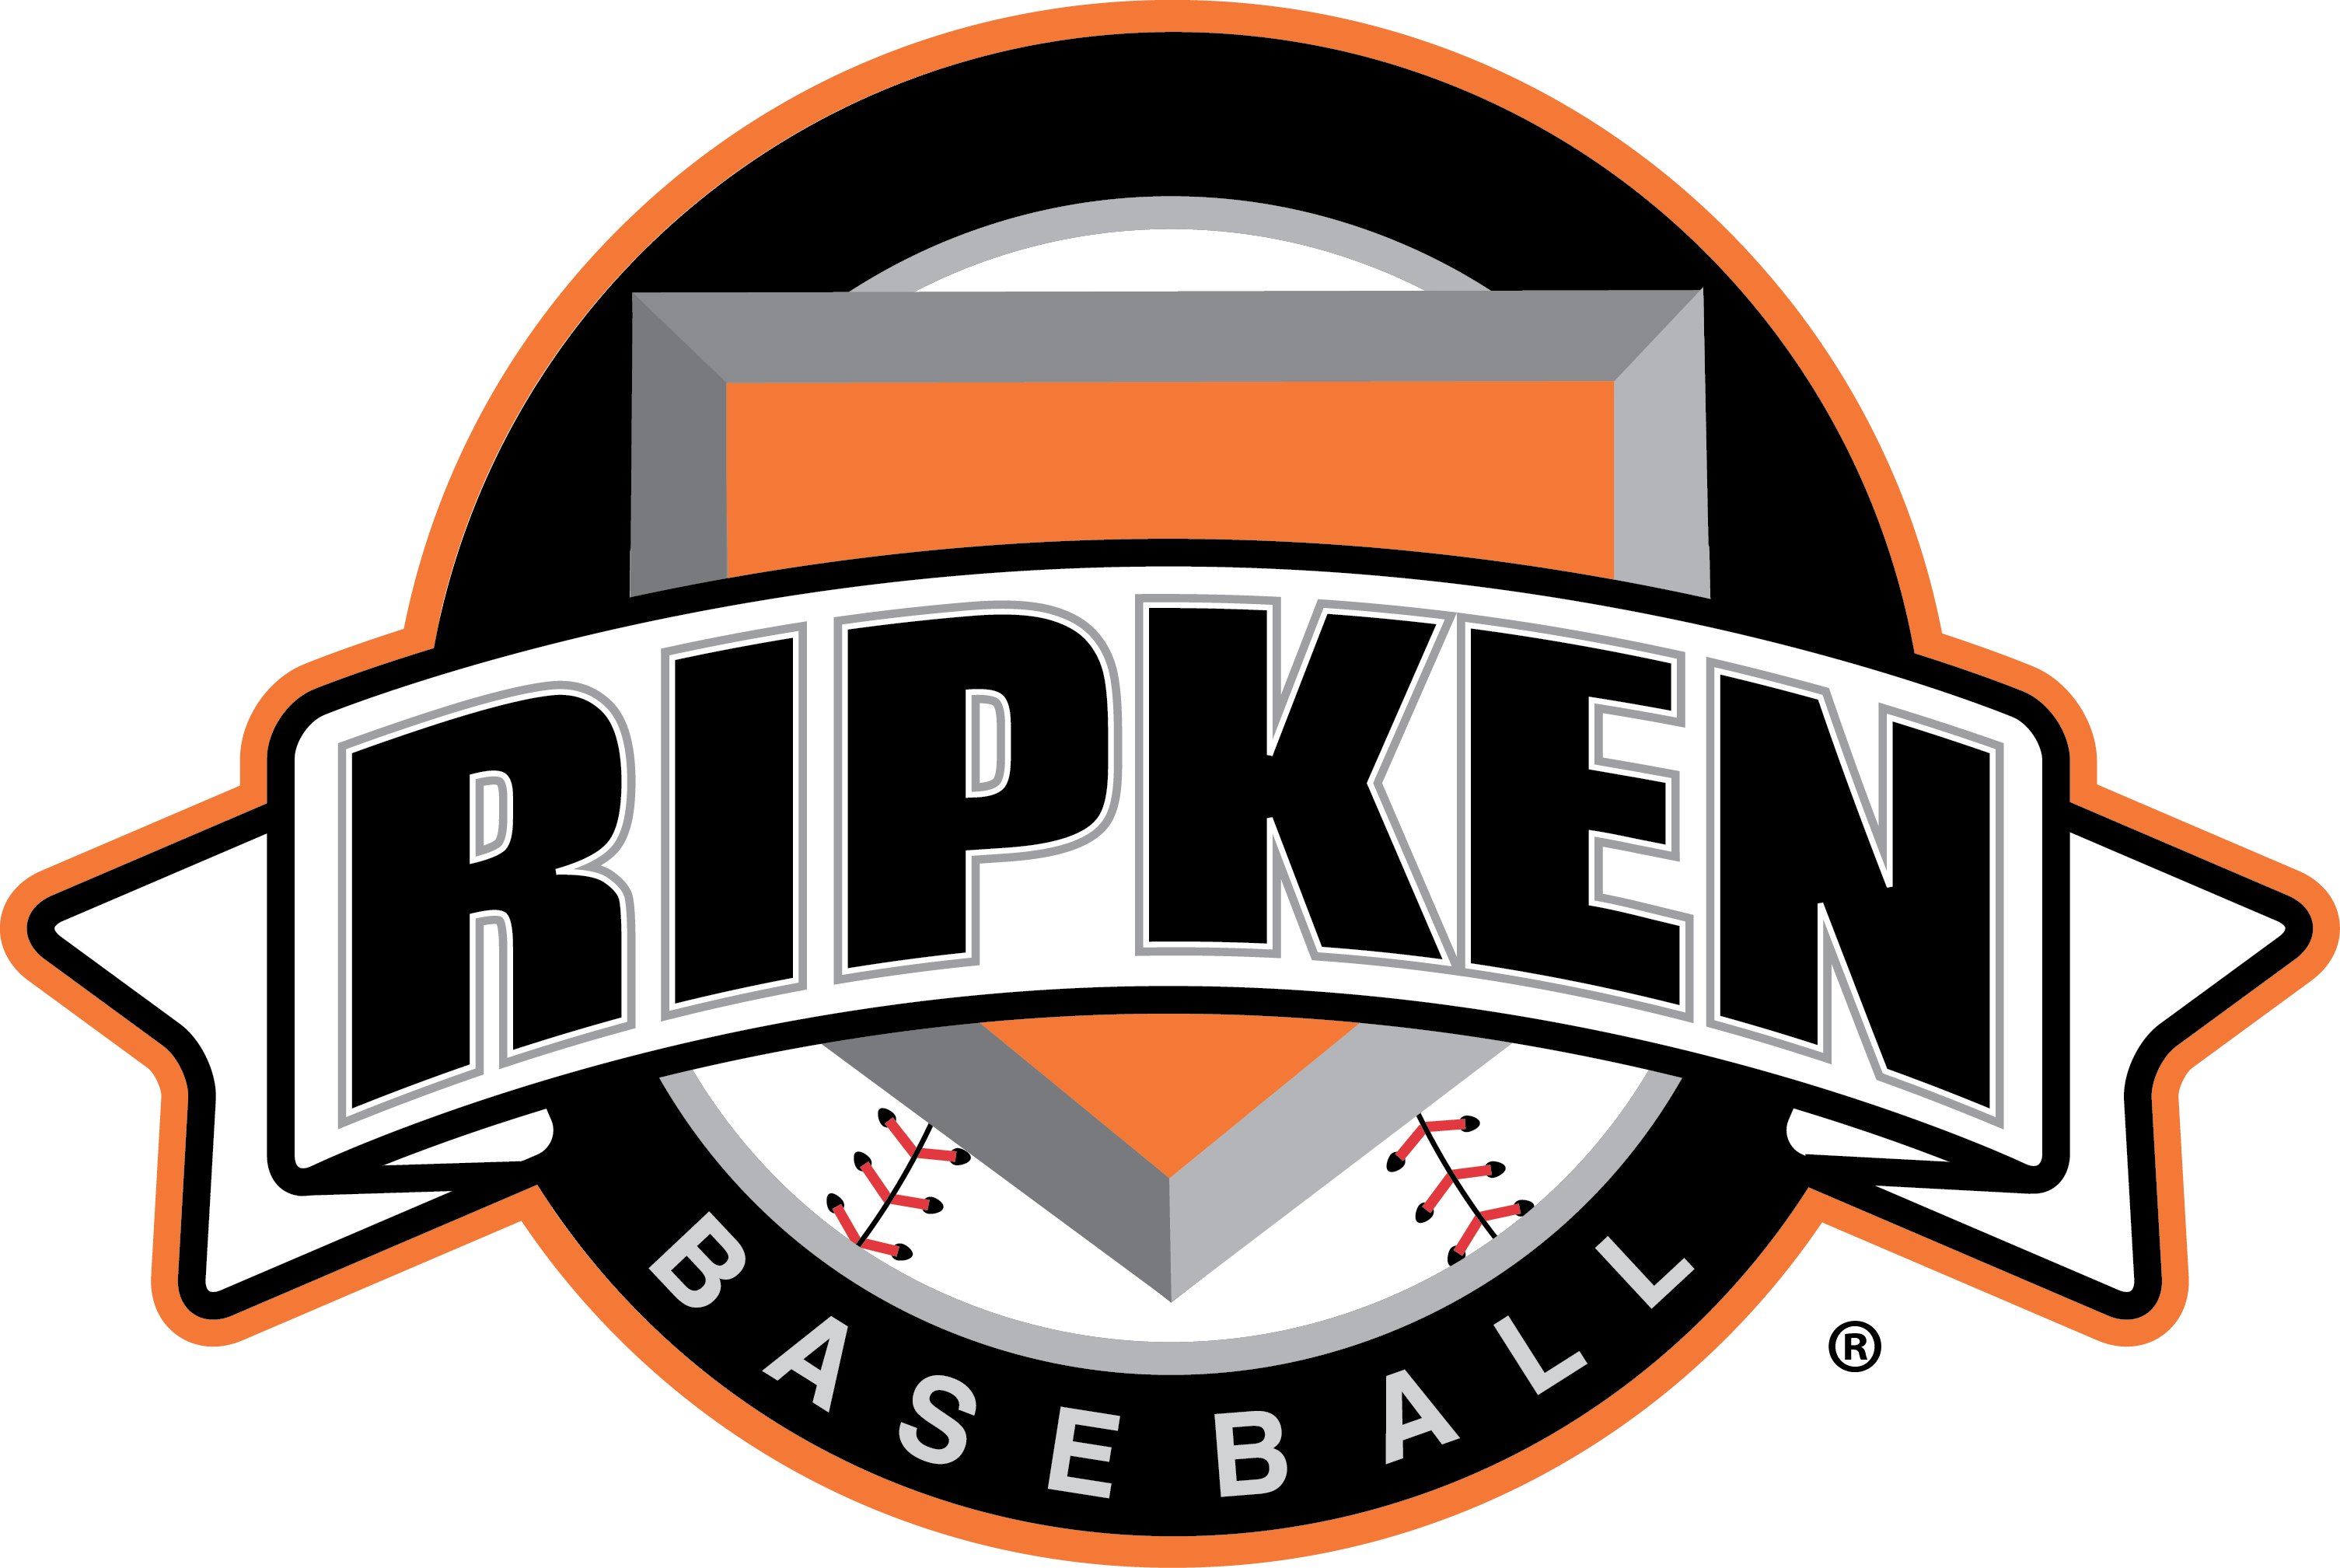 <h2><strong>Ripken Basketball<br>Experience</strong></h2>